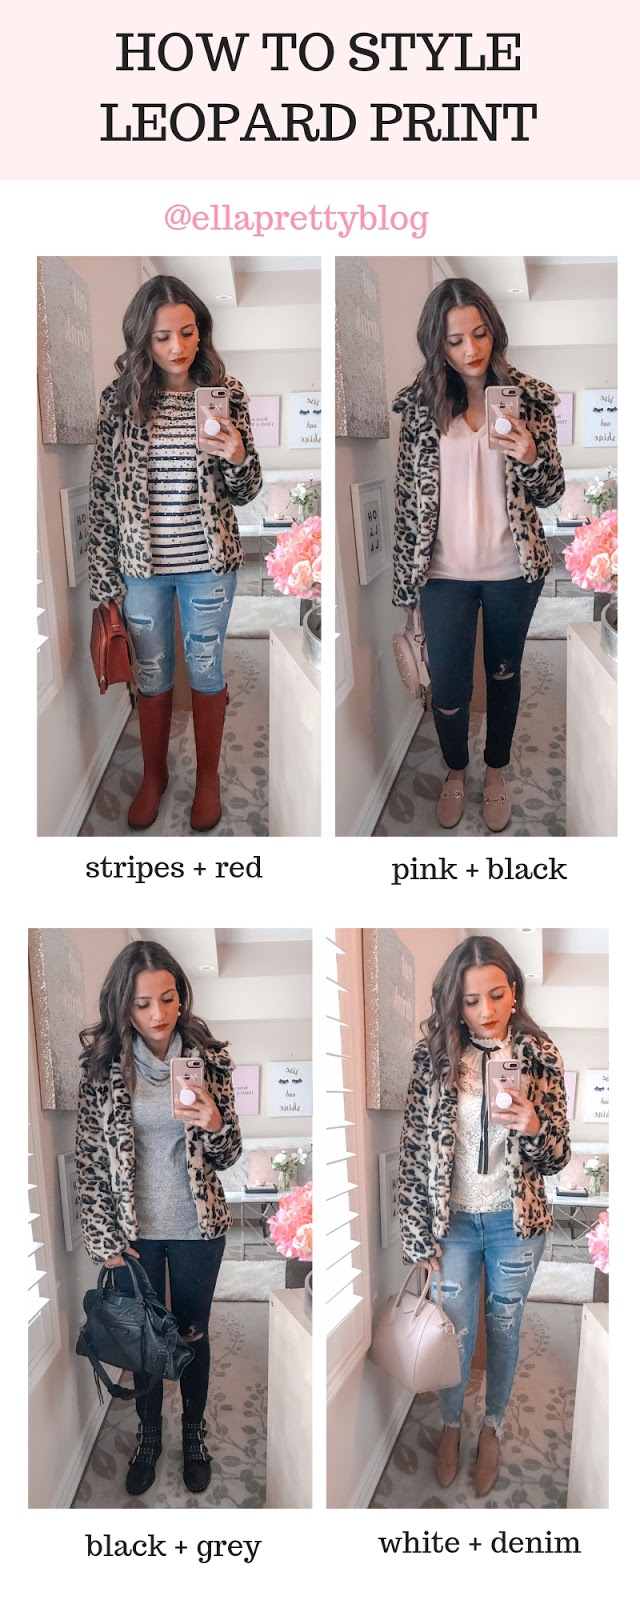 How to style a leopard print coat jacket blogger outfit plaid scarf red rainboots  stripes pink black grey white distressed jeans denim outfit inspiration